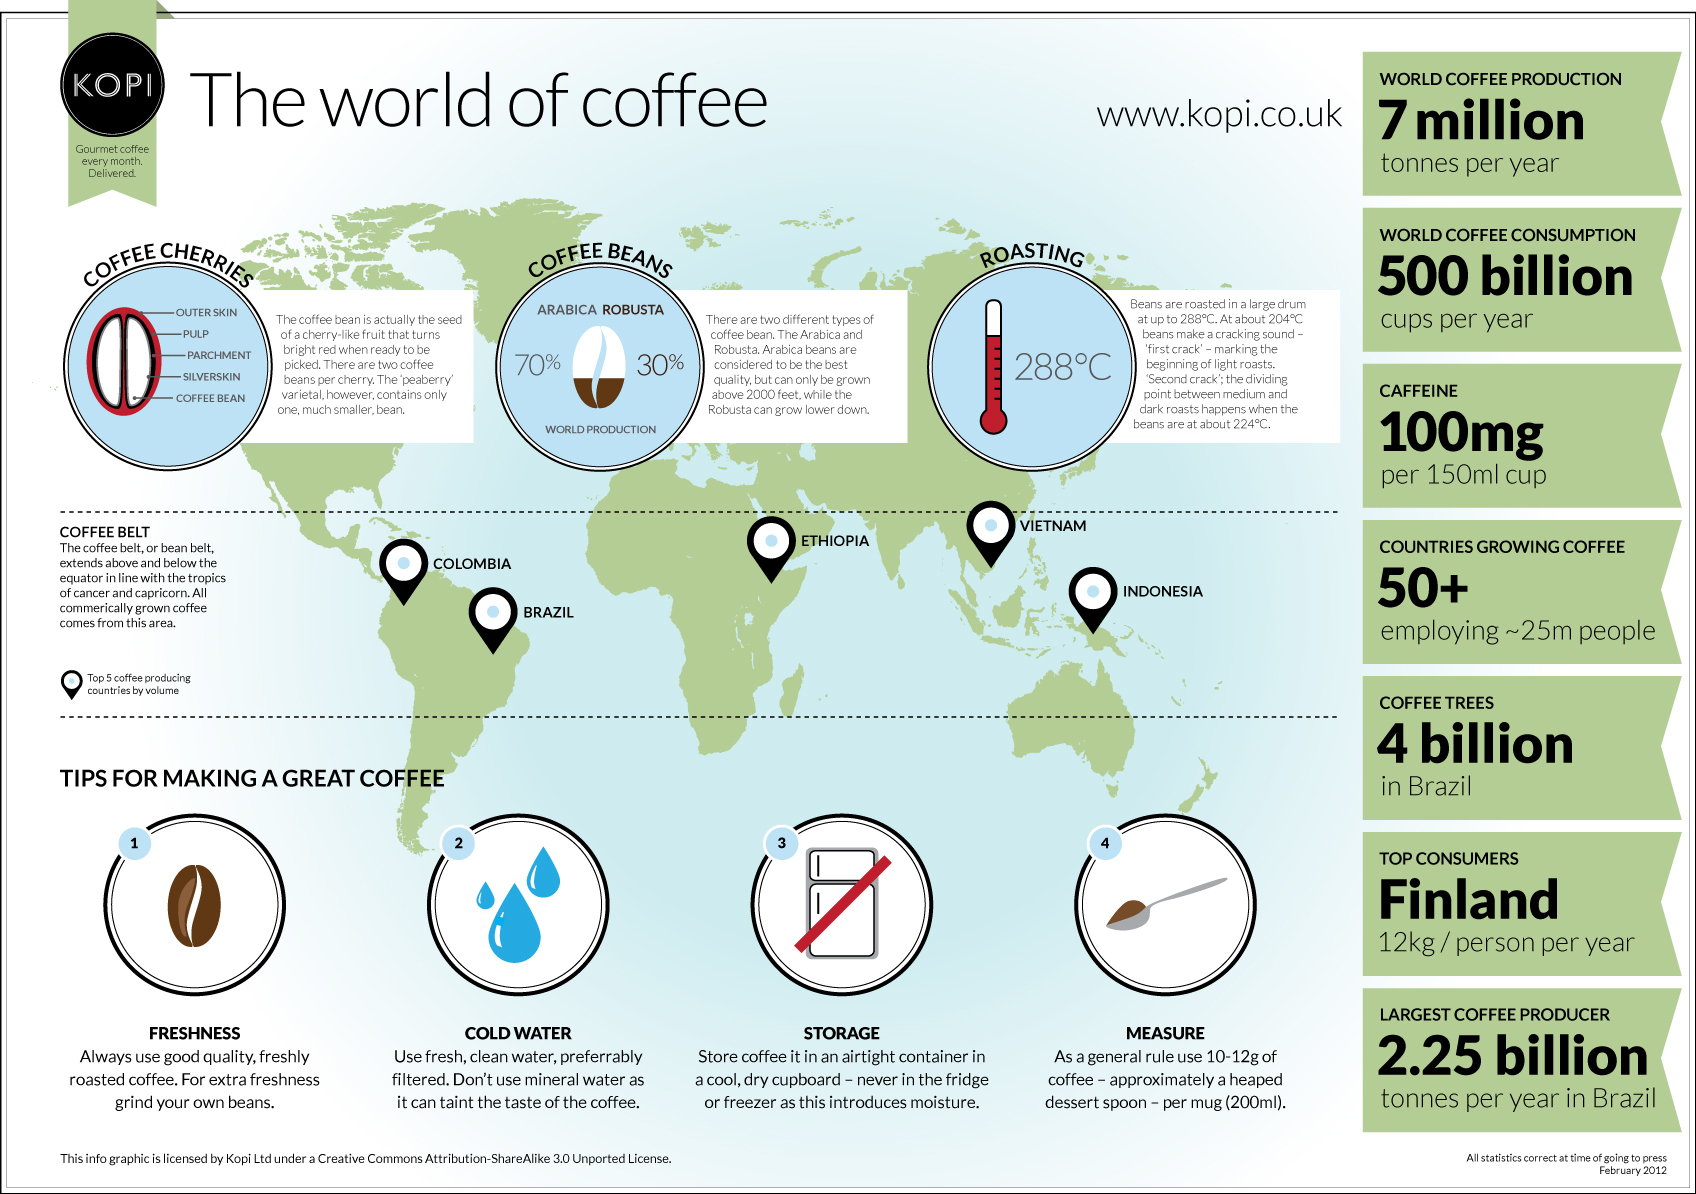 Facts About The World Of Coffee (And Coffee In The World) Infographic